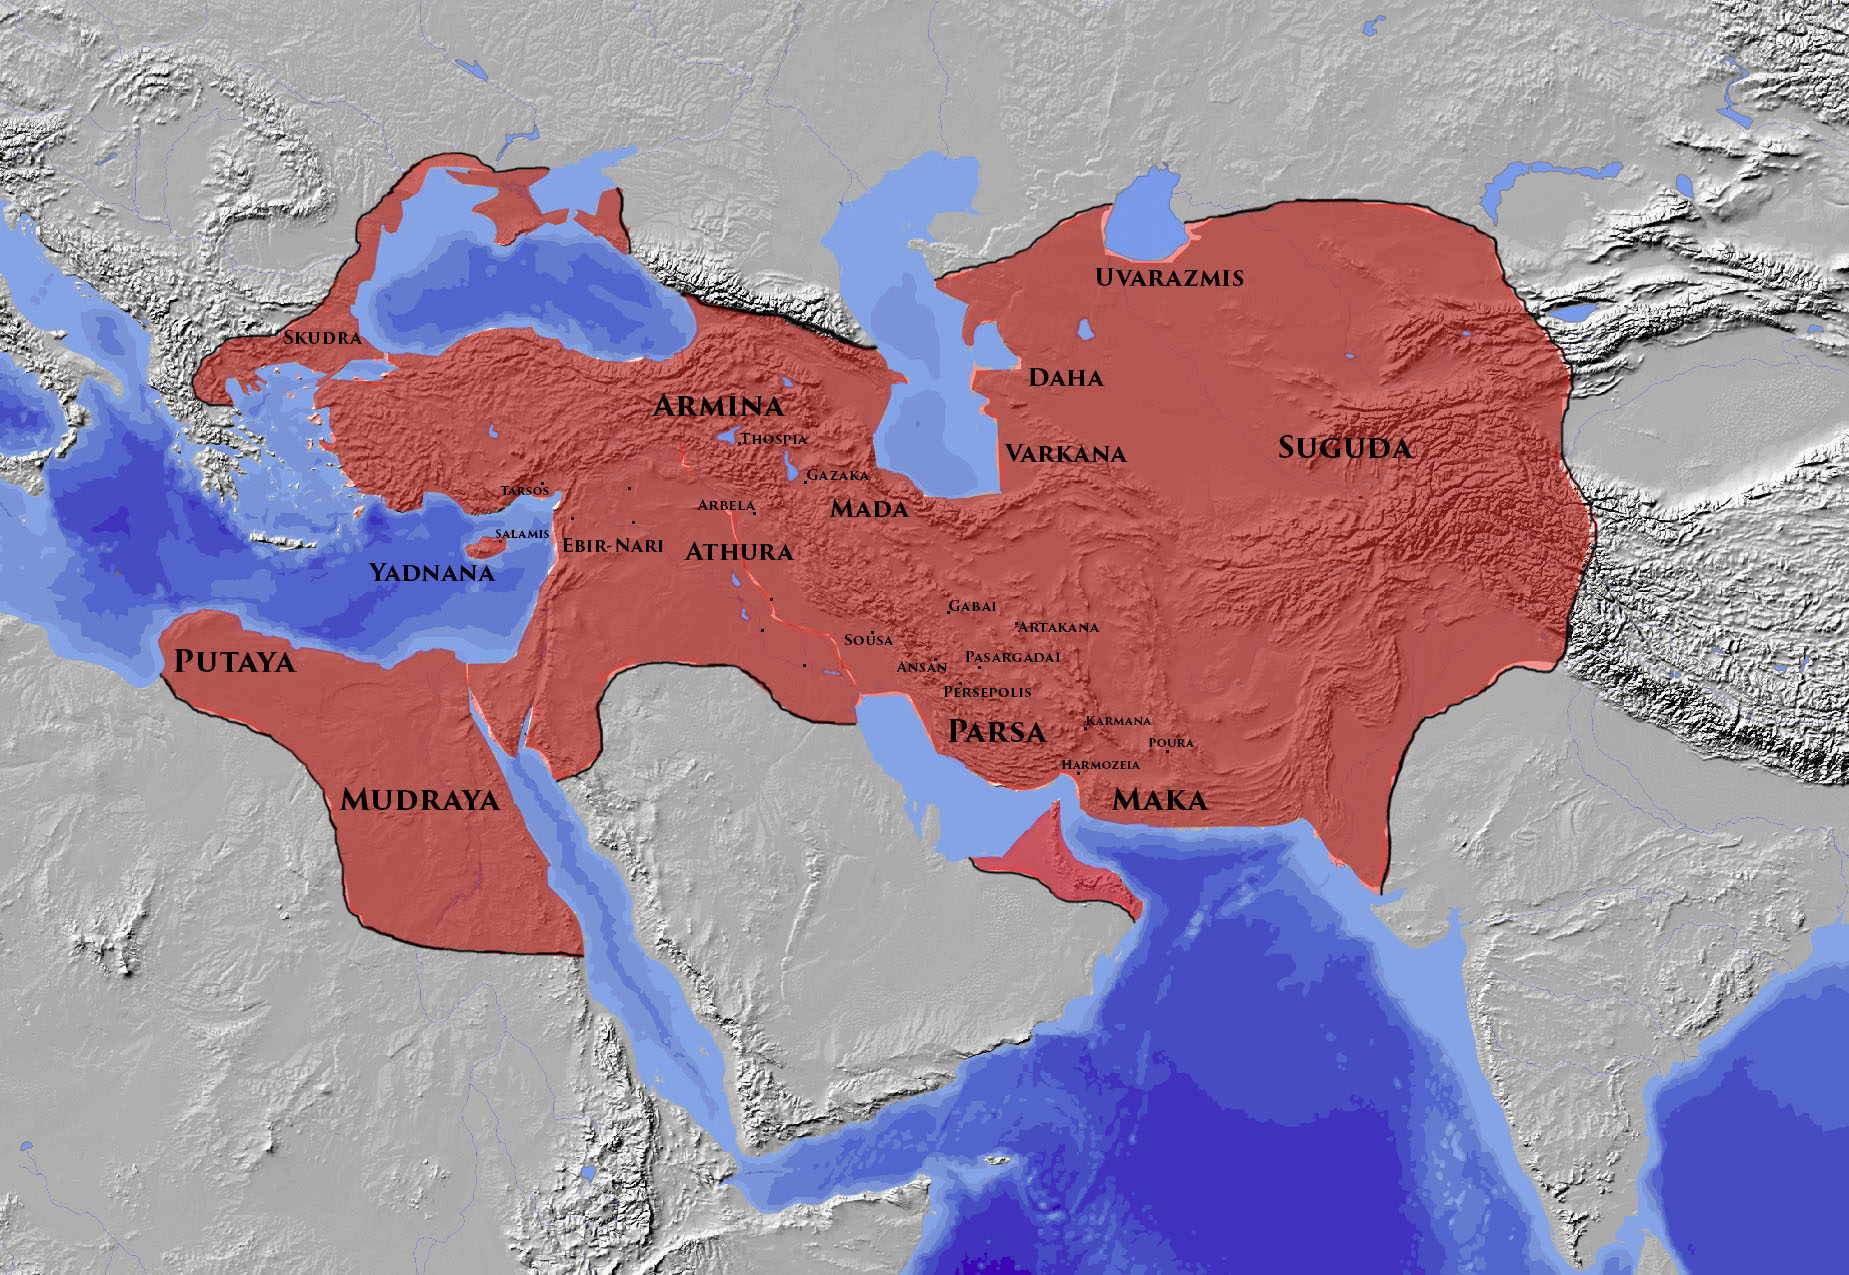 achaemenid empire The safavid empire was the first persian empire established after the arab conquest of persia by shah ismail i from their base in ardabil, the safavid persians.